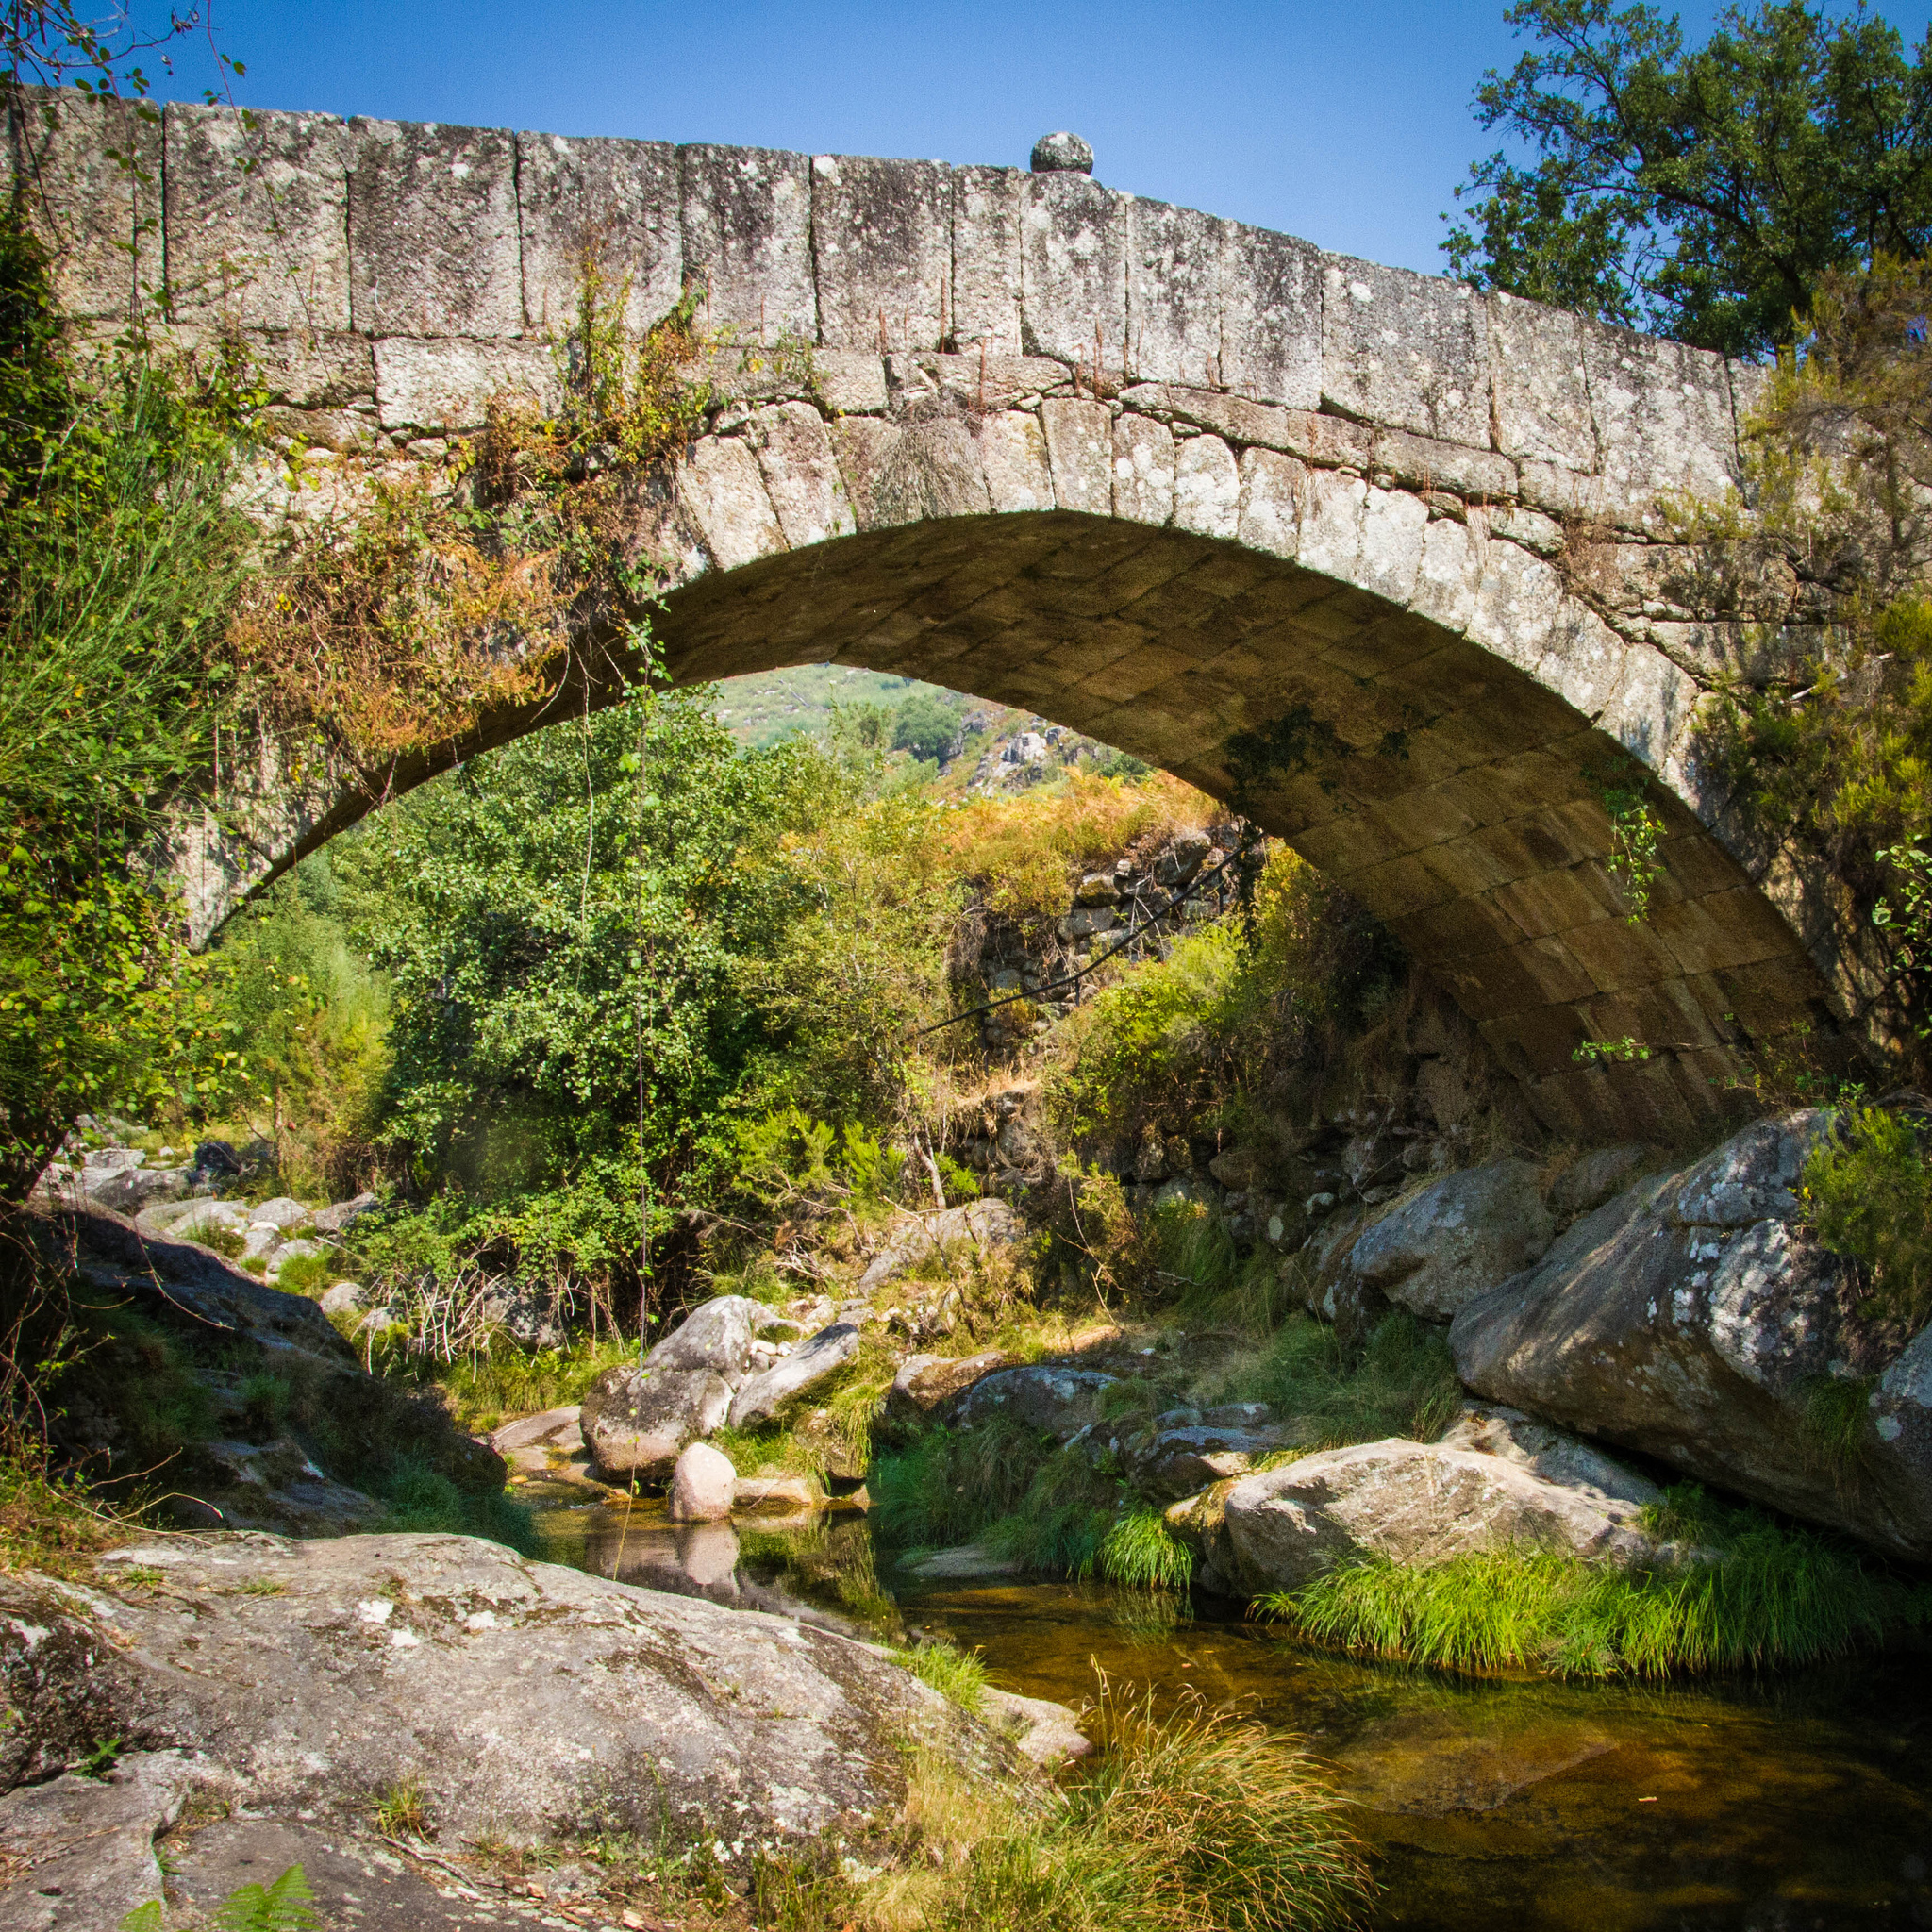 Geres Portugal  City new picture : Video: Exploring the Wild Side of Portugal in Peneda Gerês National ...